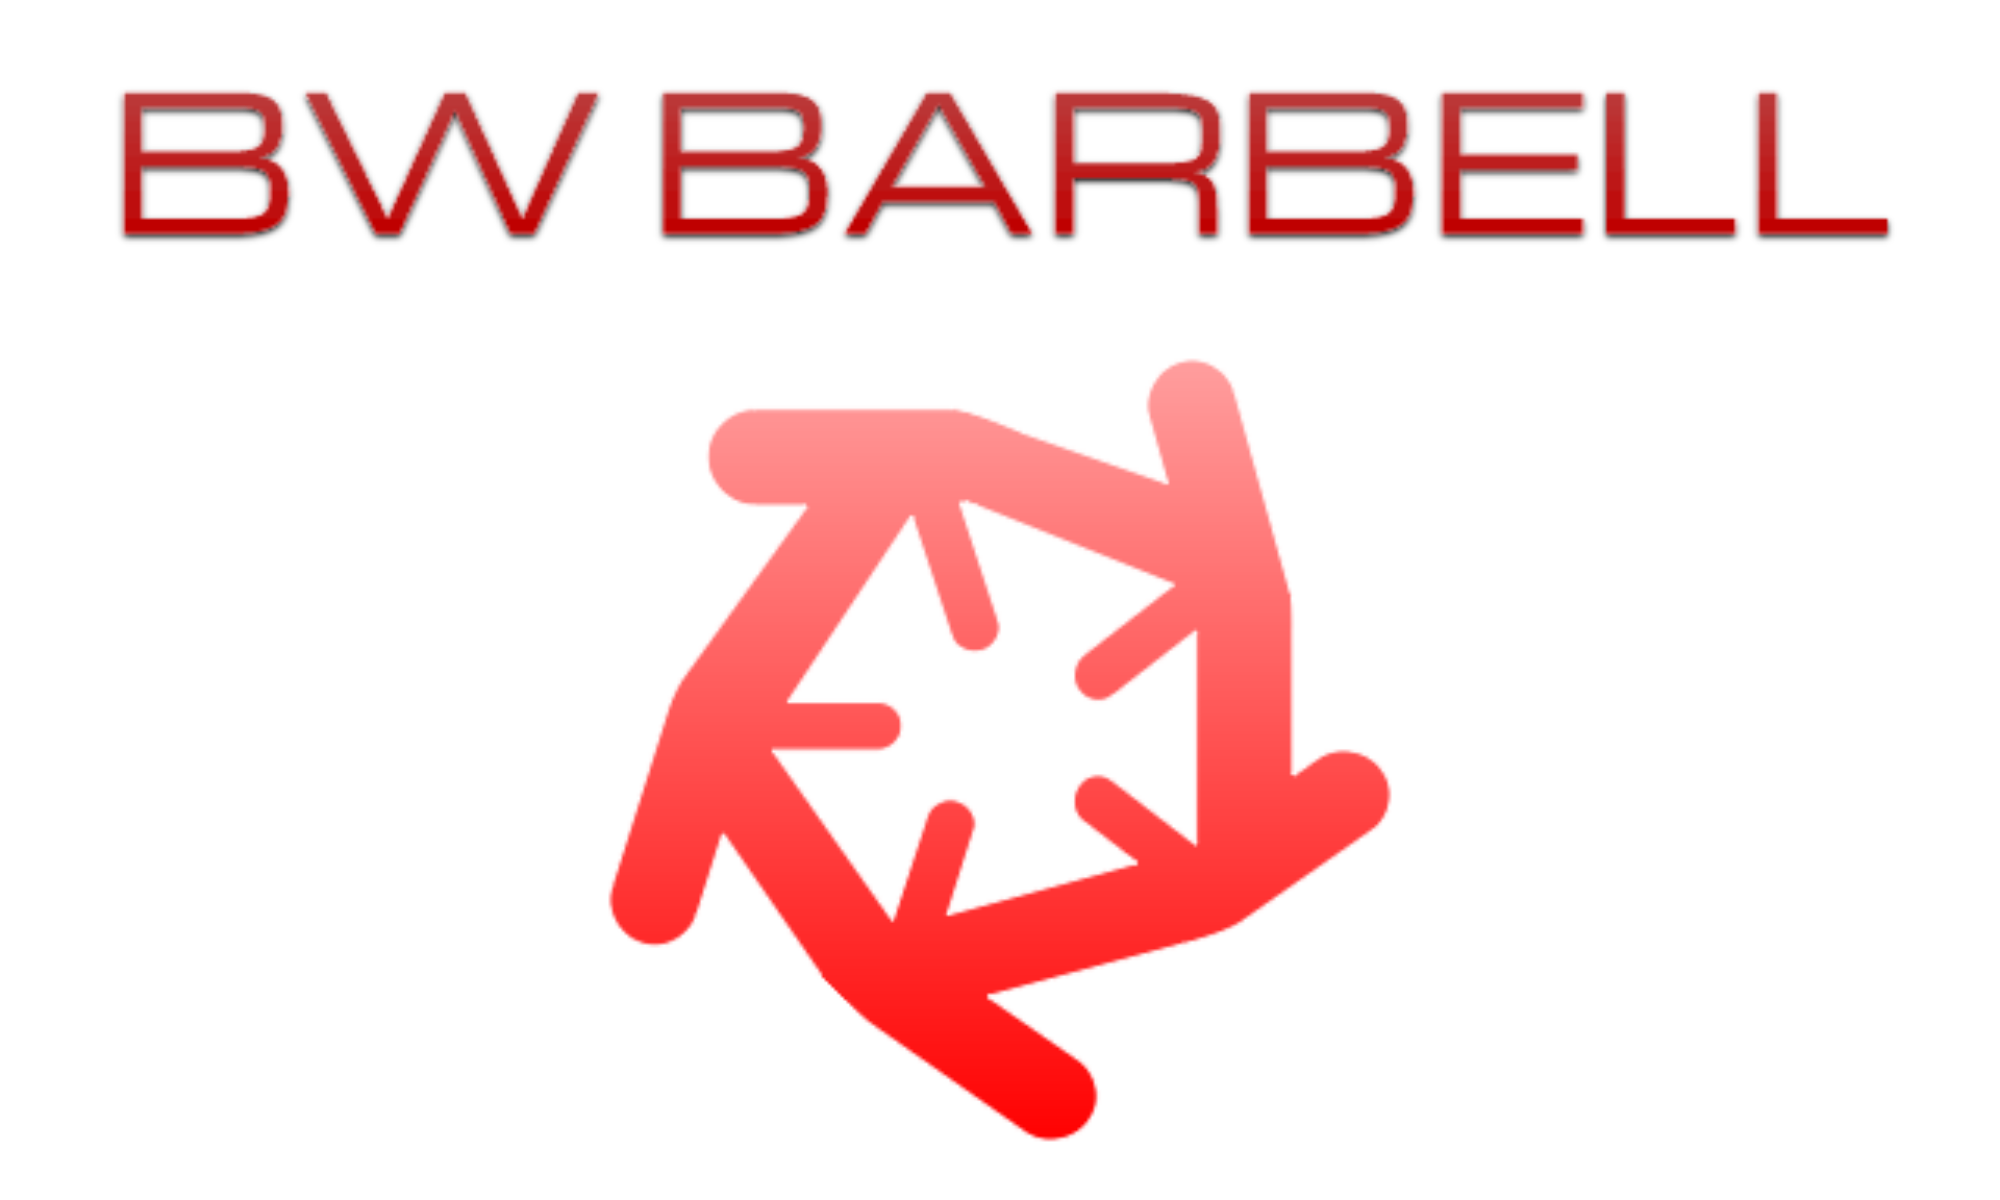 BW Barbell